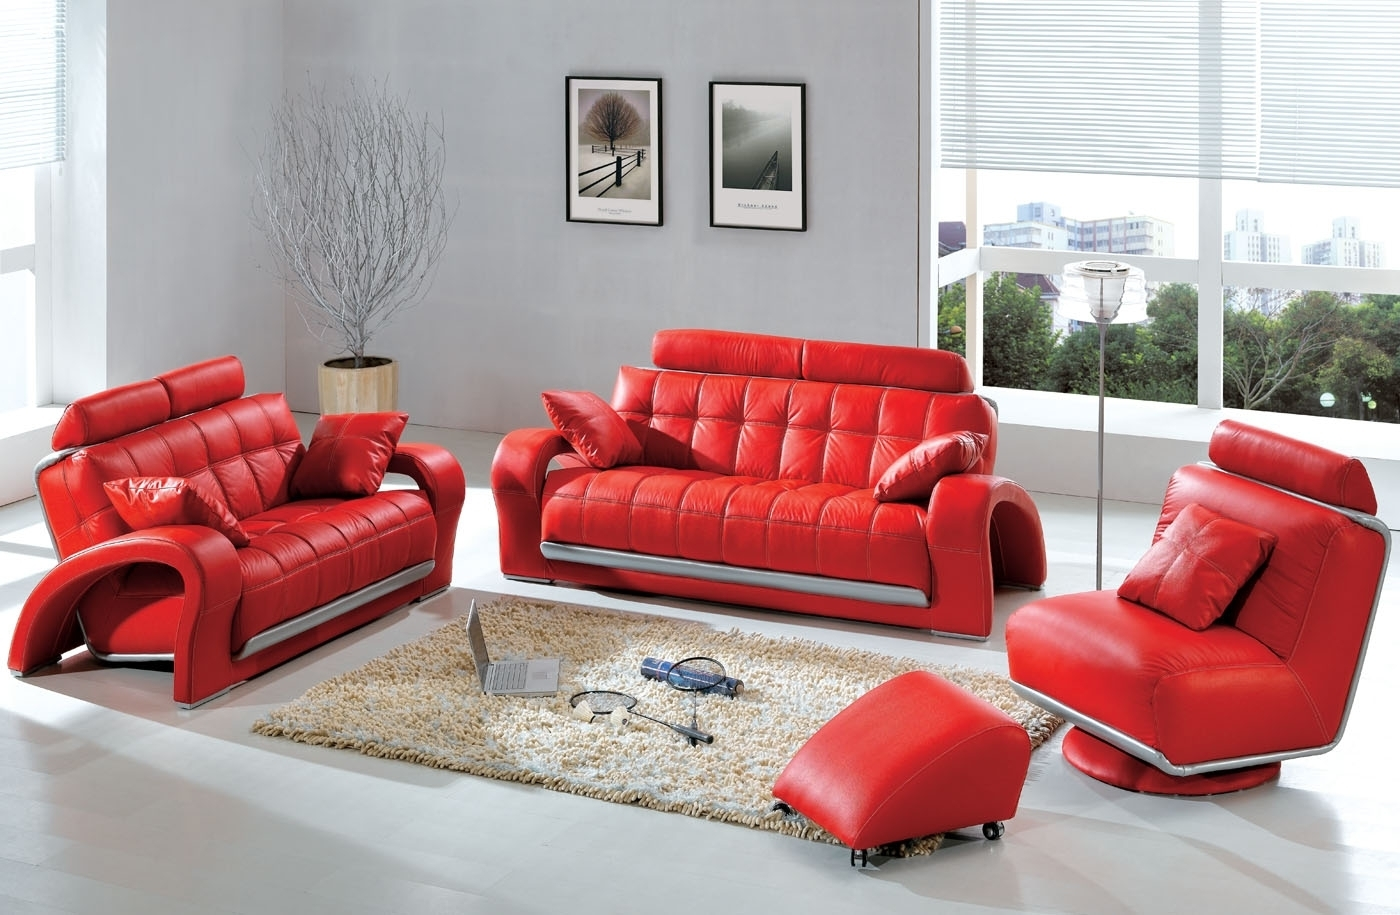 Modern & Contemporary Leather Sofa & Sectional Sets | Funky regarding Red Leather Couches For Living Room (Image 6 of 15)